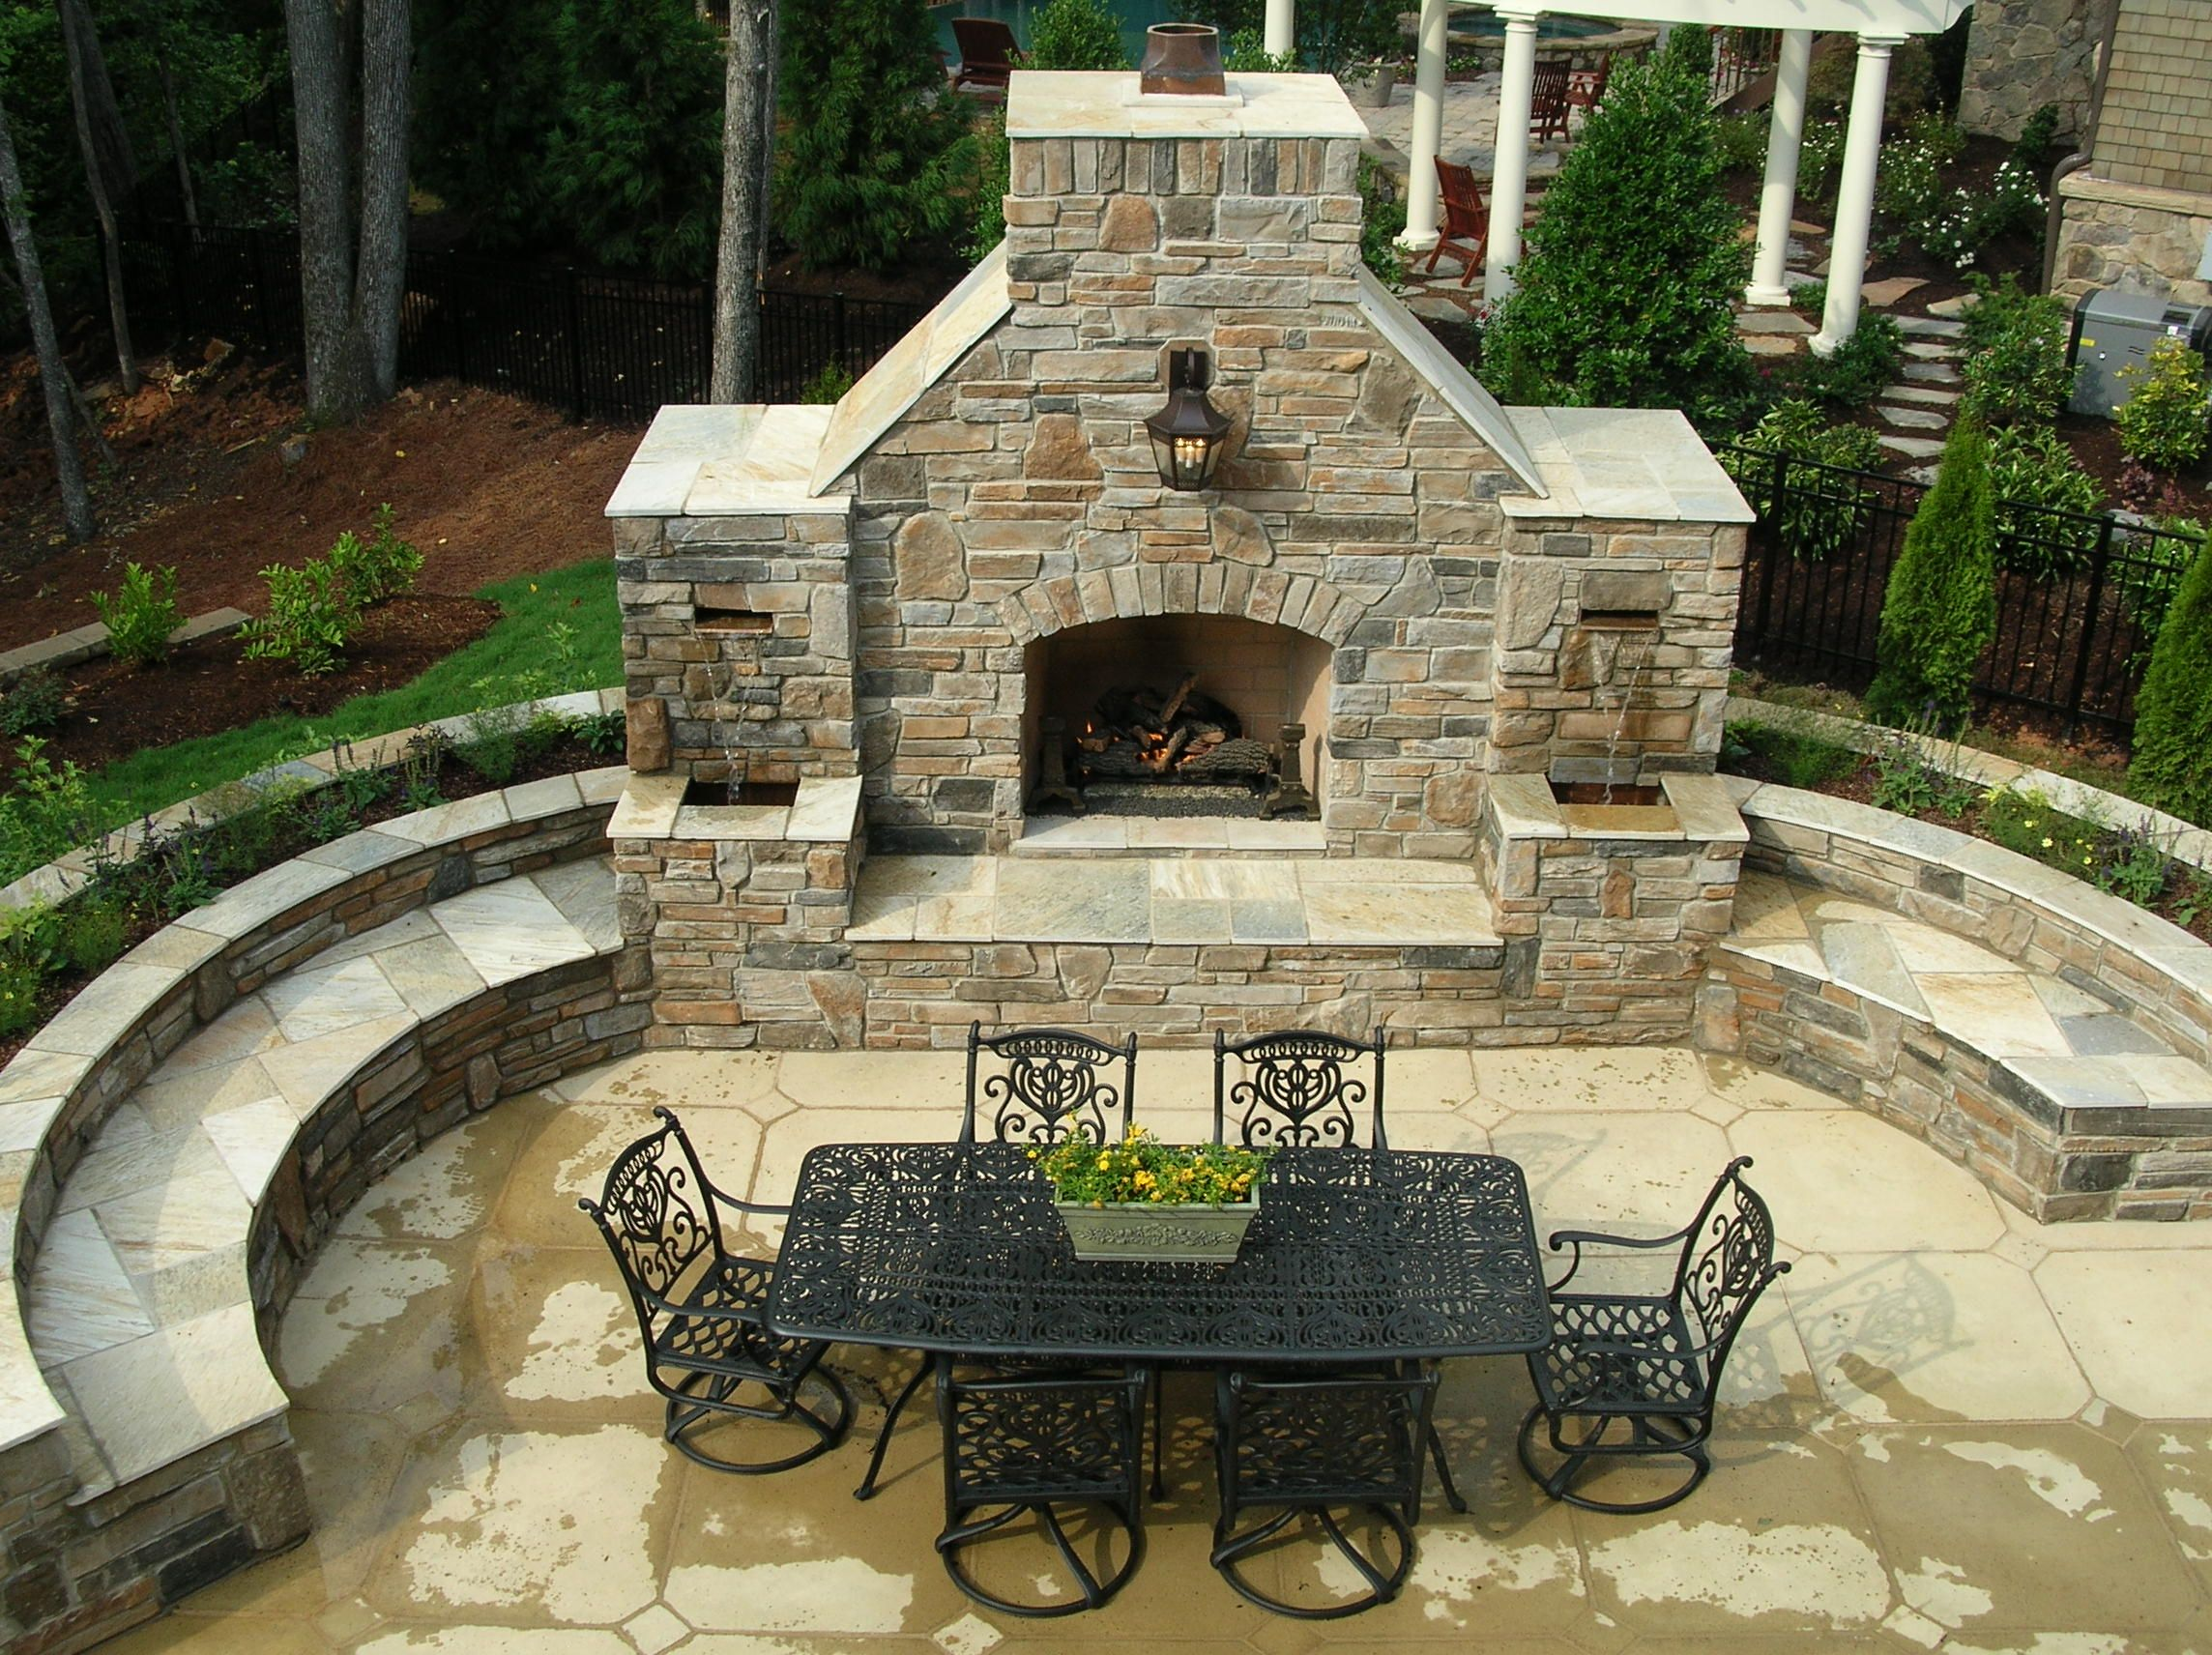 Fireplace with water feature isnt this amazing so